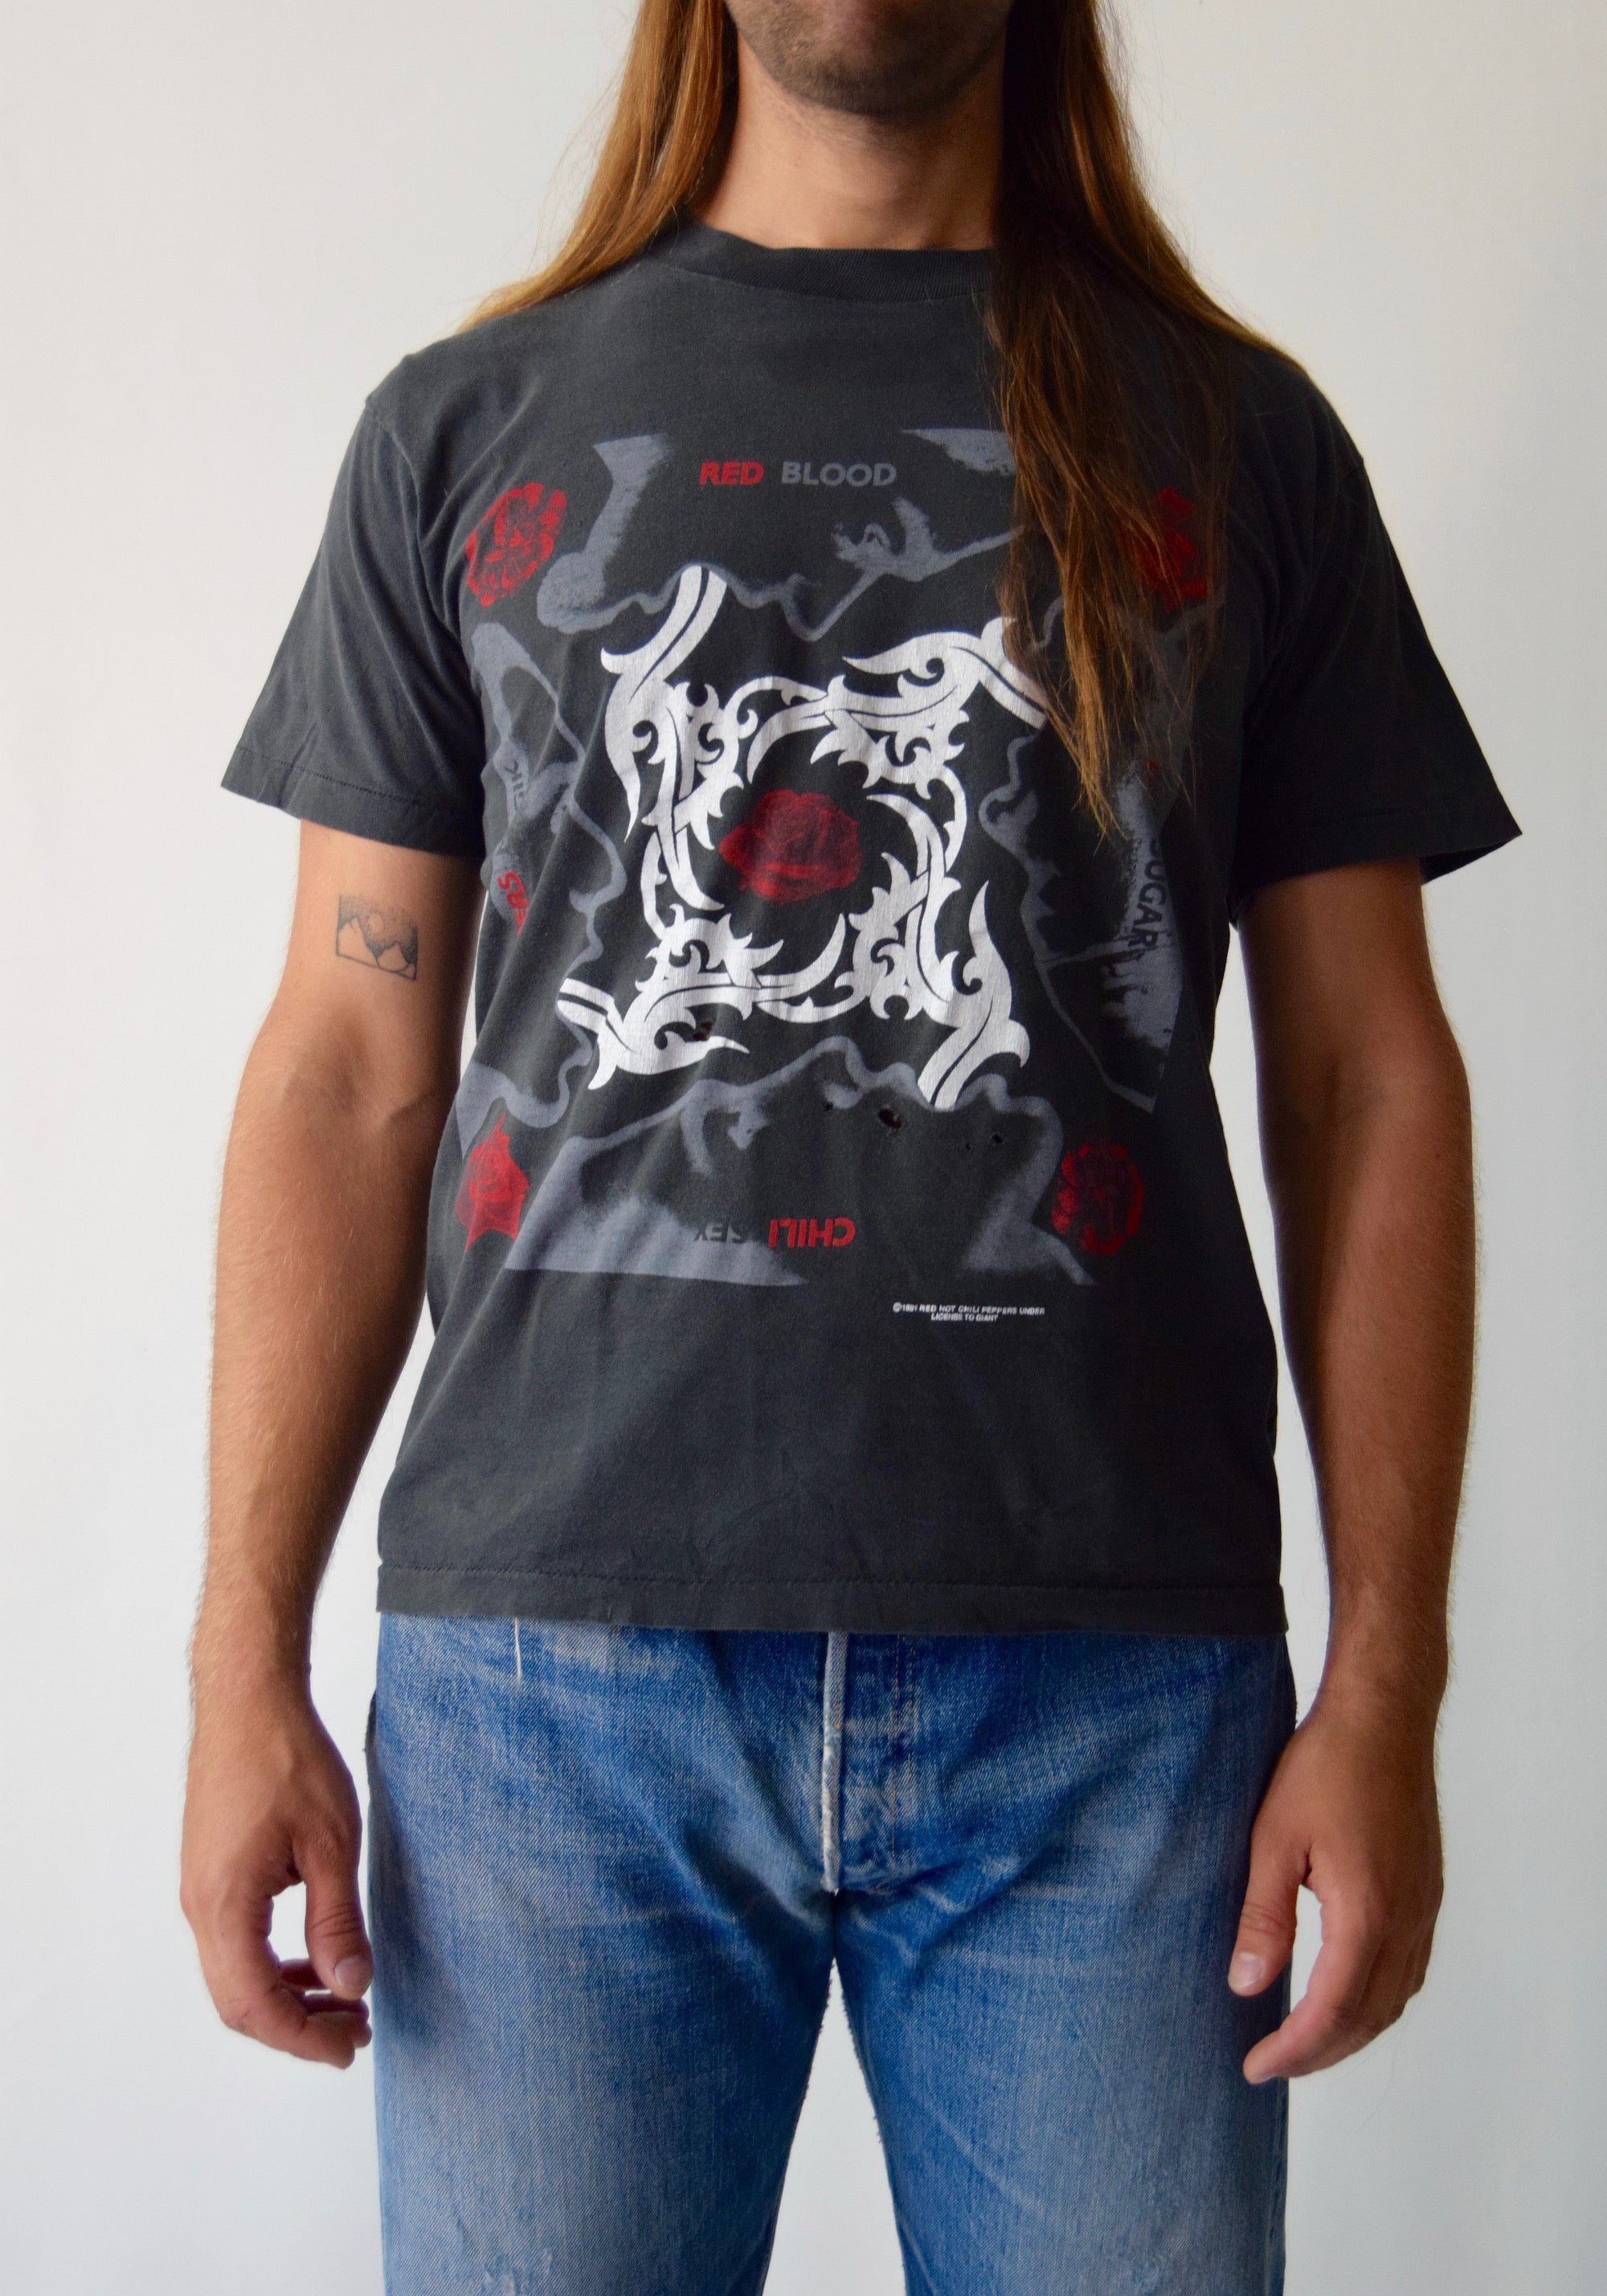 91' Blood Sugar Sex Magik Red Hot Chili Peppers T-Shirt